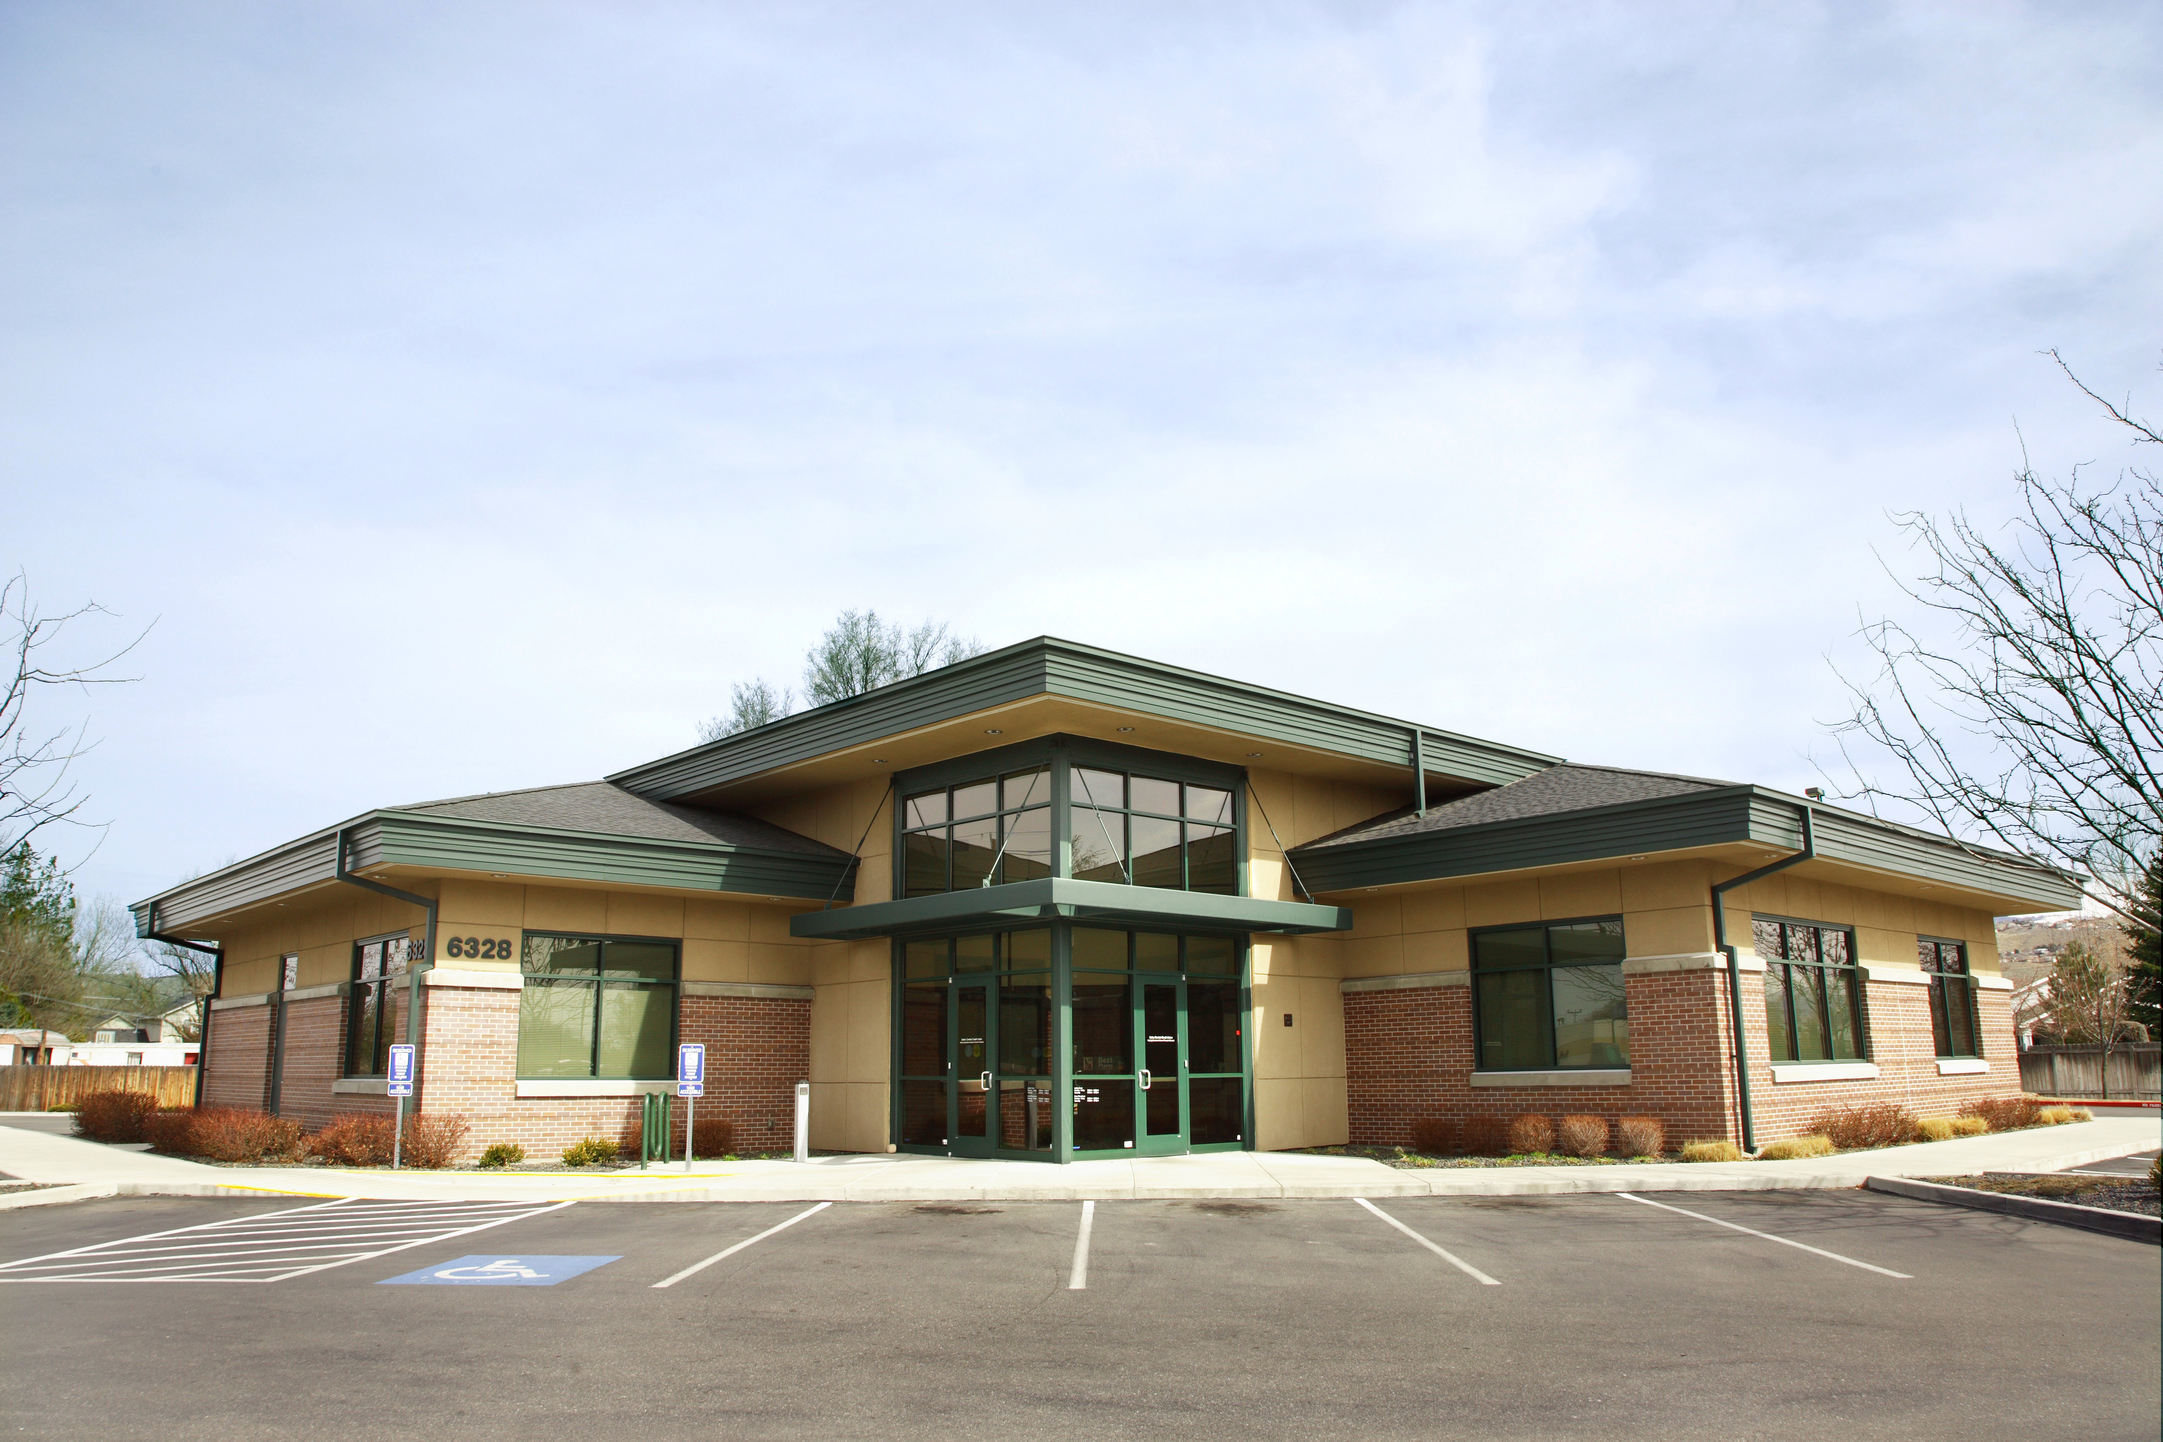 pierce park branch & atm in boise - idaho central credit union